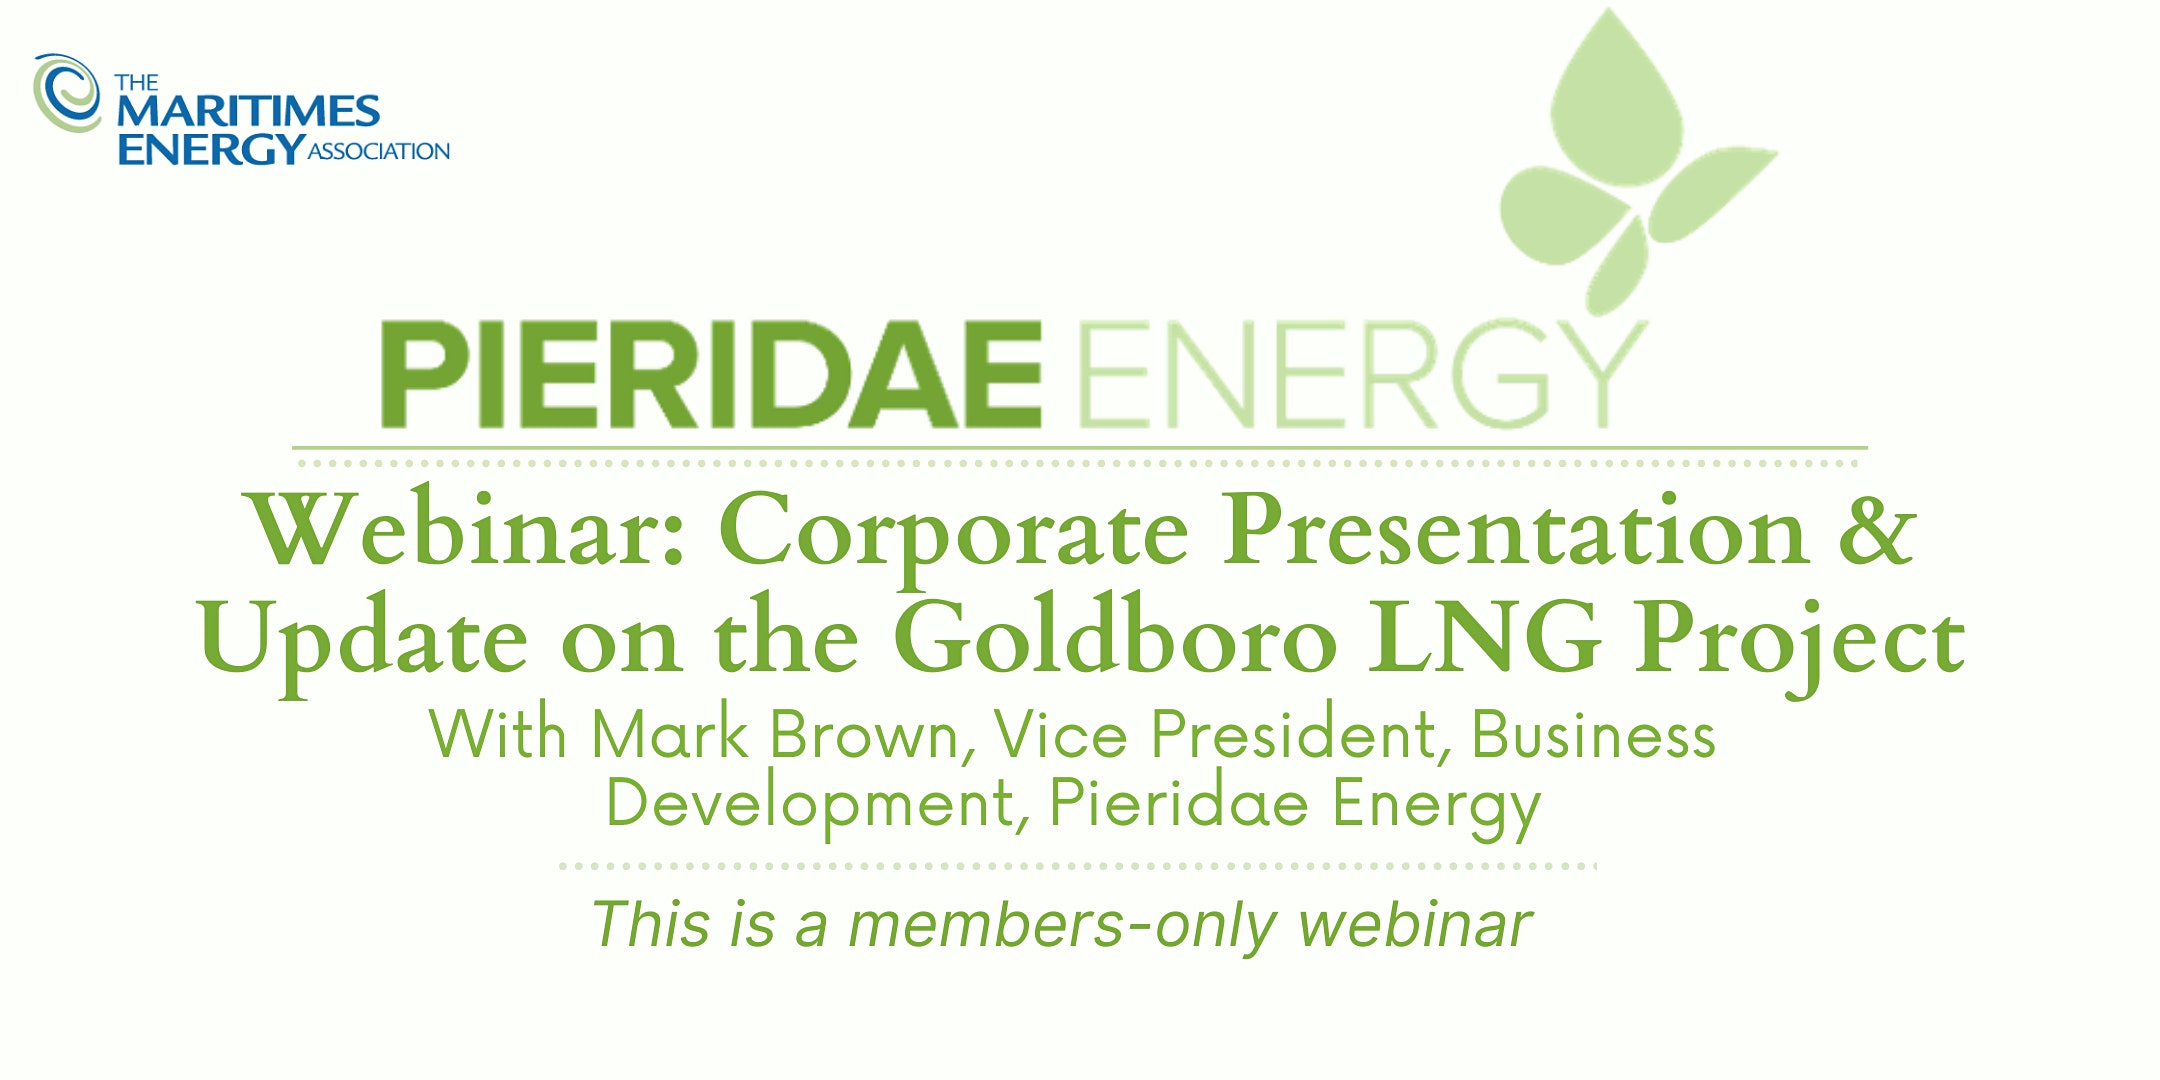 Pieridae Energy Corporate Presentation & Update on the Goldboro LNG Project